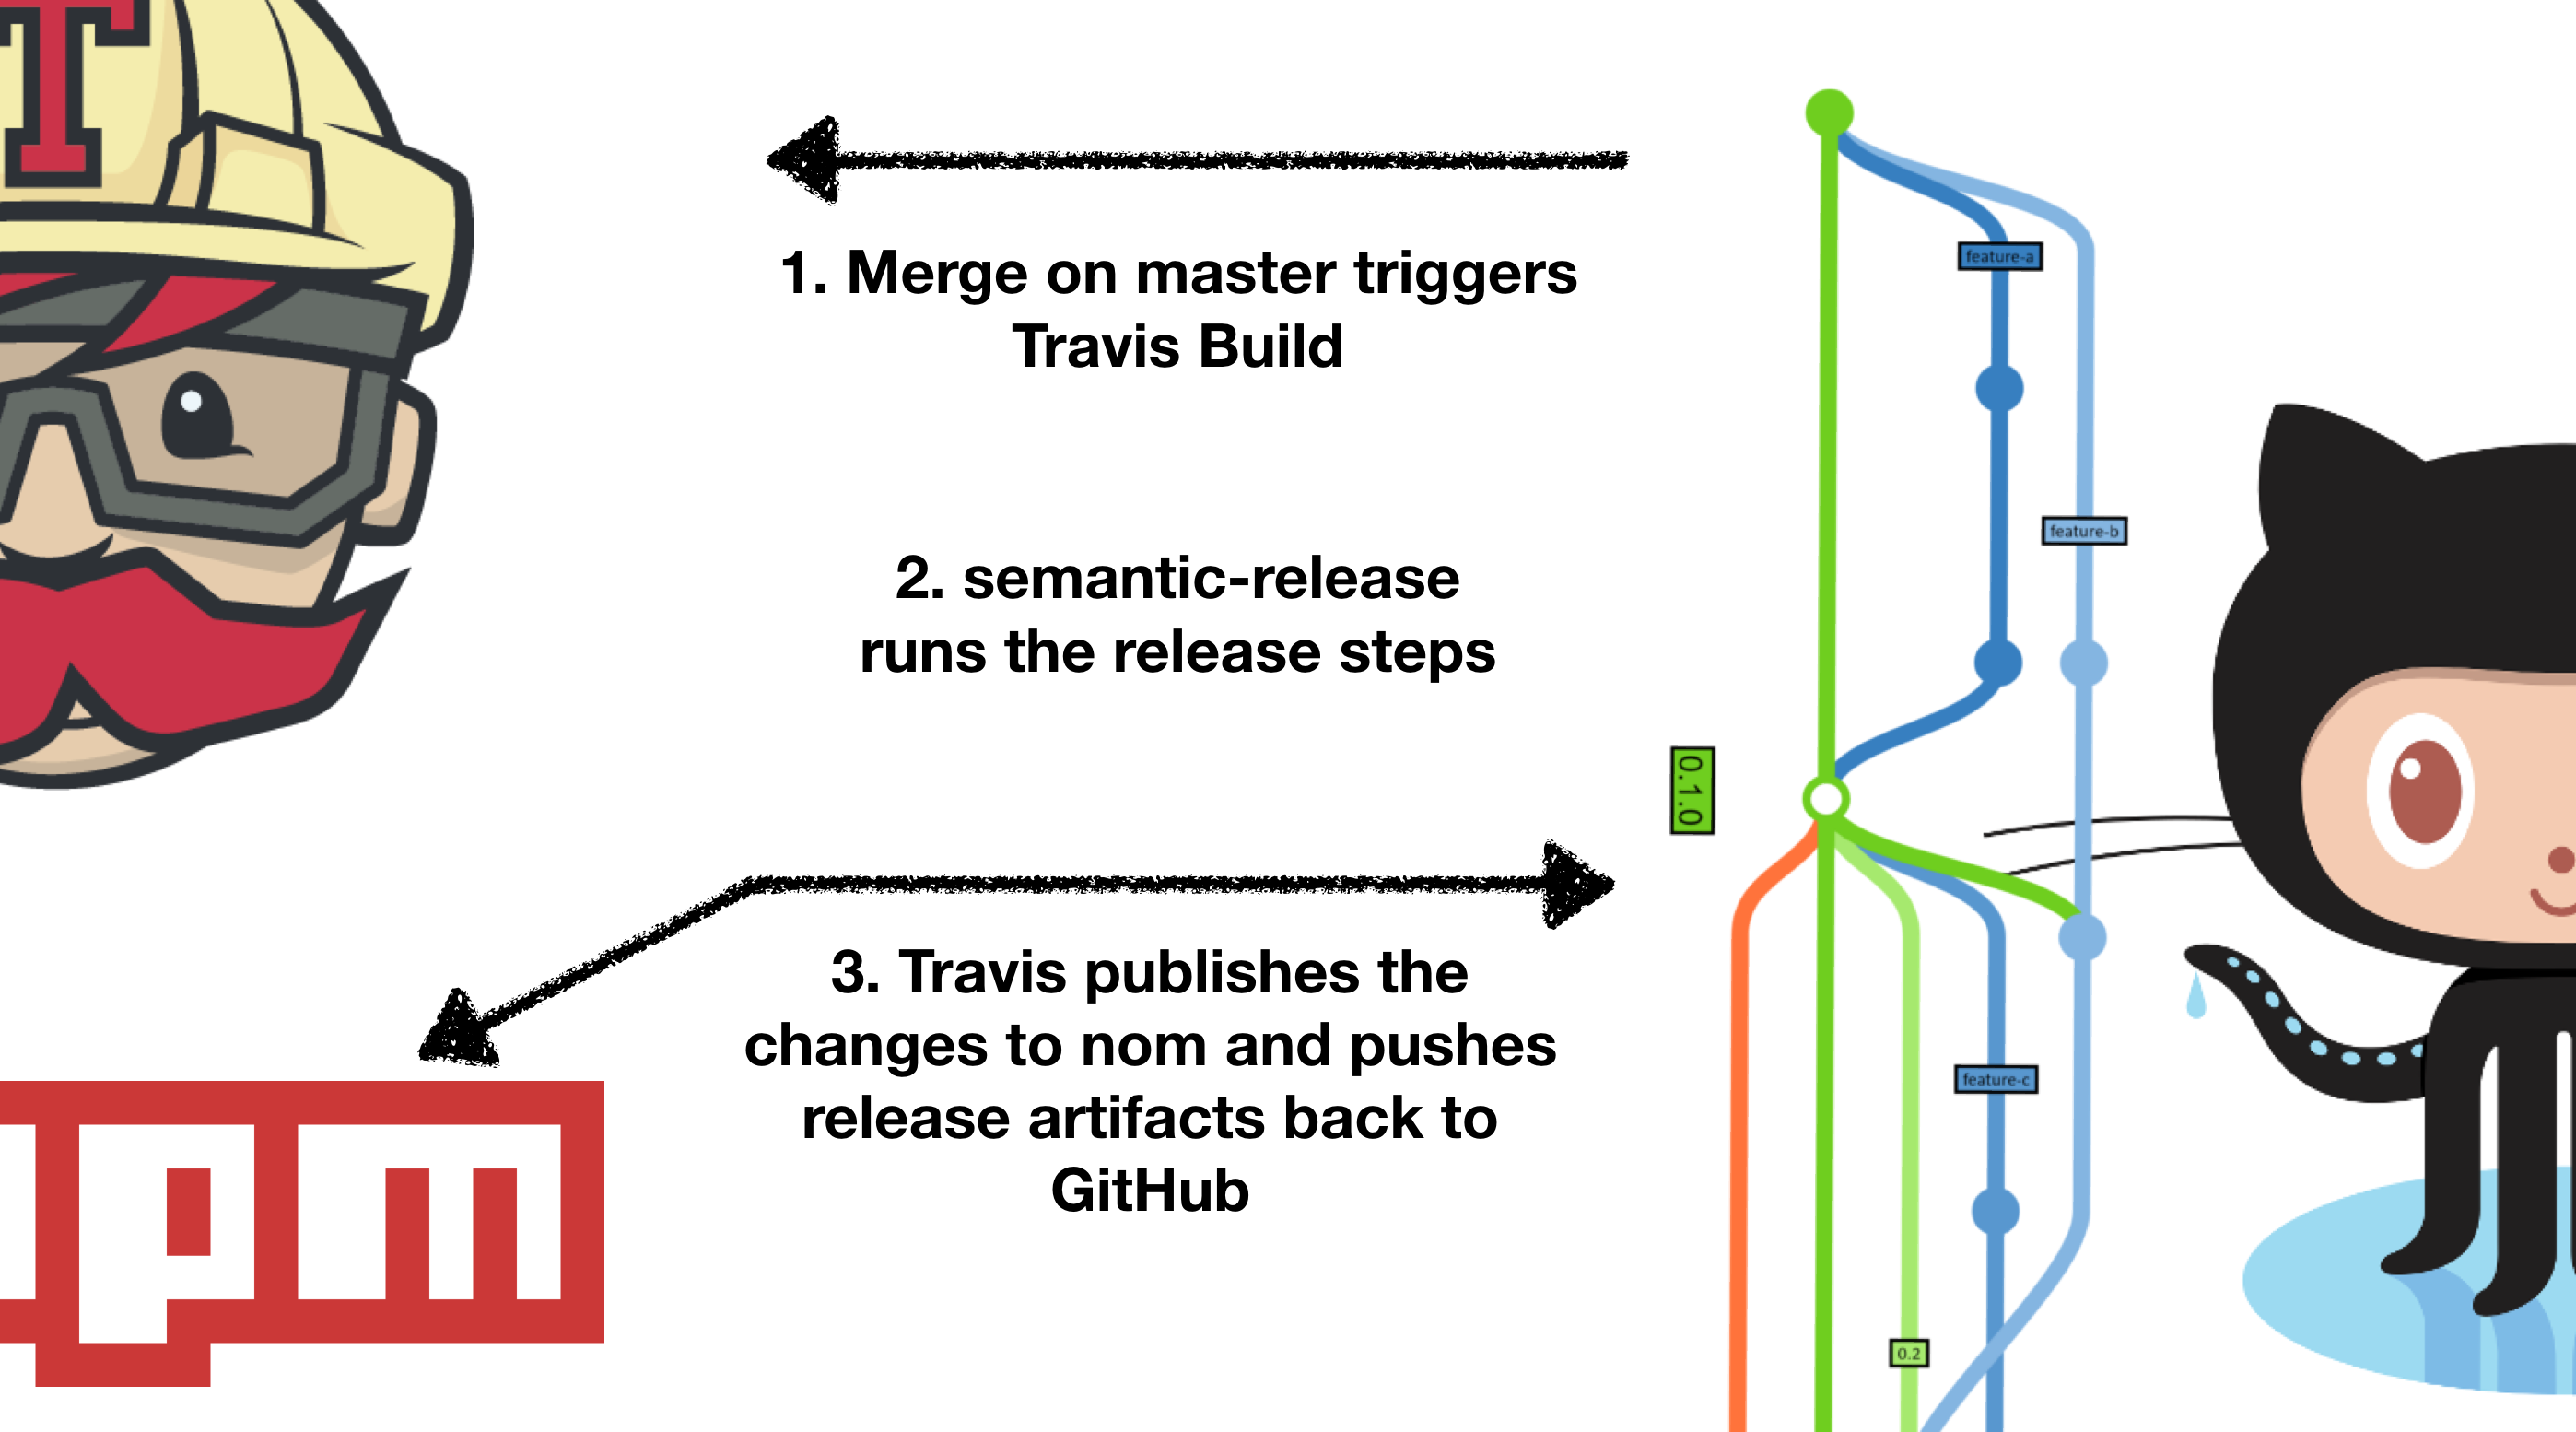 a5e1548d60e1a As soon as we merge our feature branch into master Travis runs a build.  semantic-release then runs the release steps.